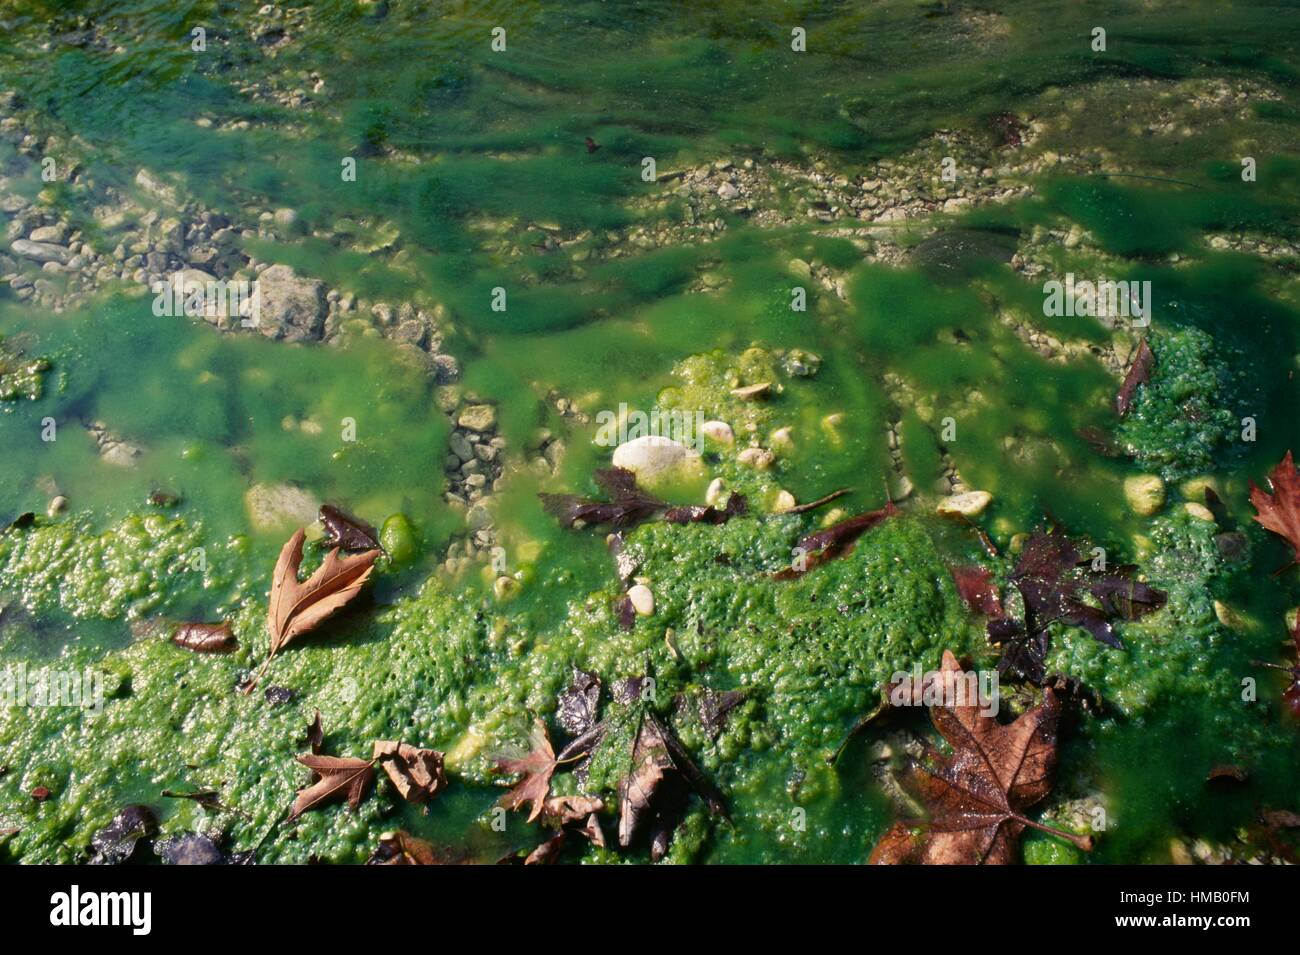 Moss and stagnant water, Acheron river, Greece. Stock Photo